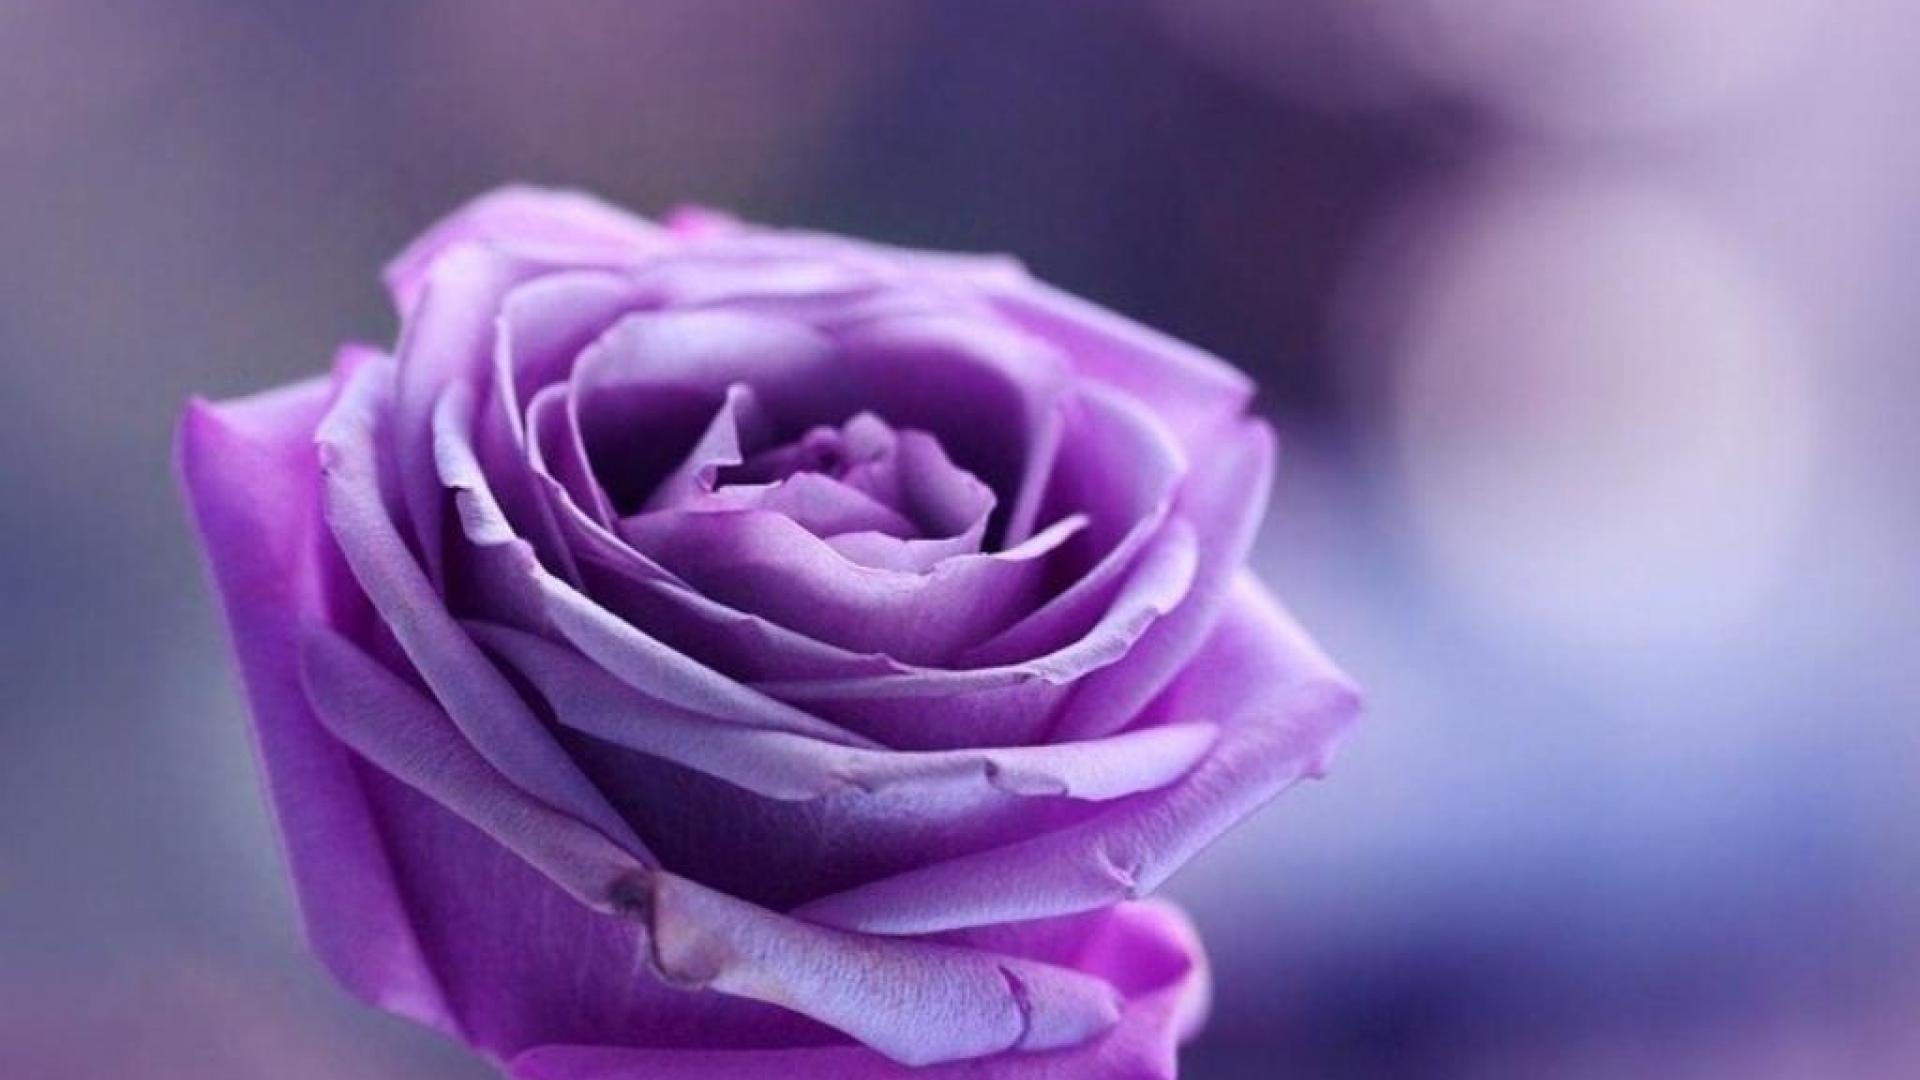 Purple Roses Background Images: Wallpaper, High Definition, High